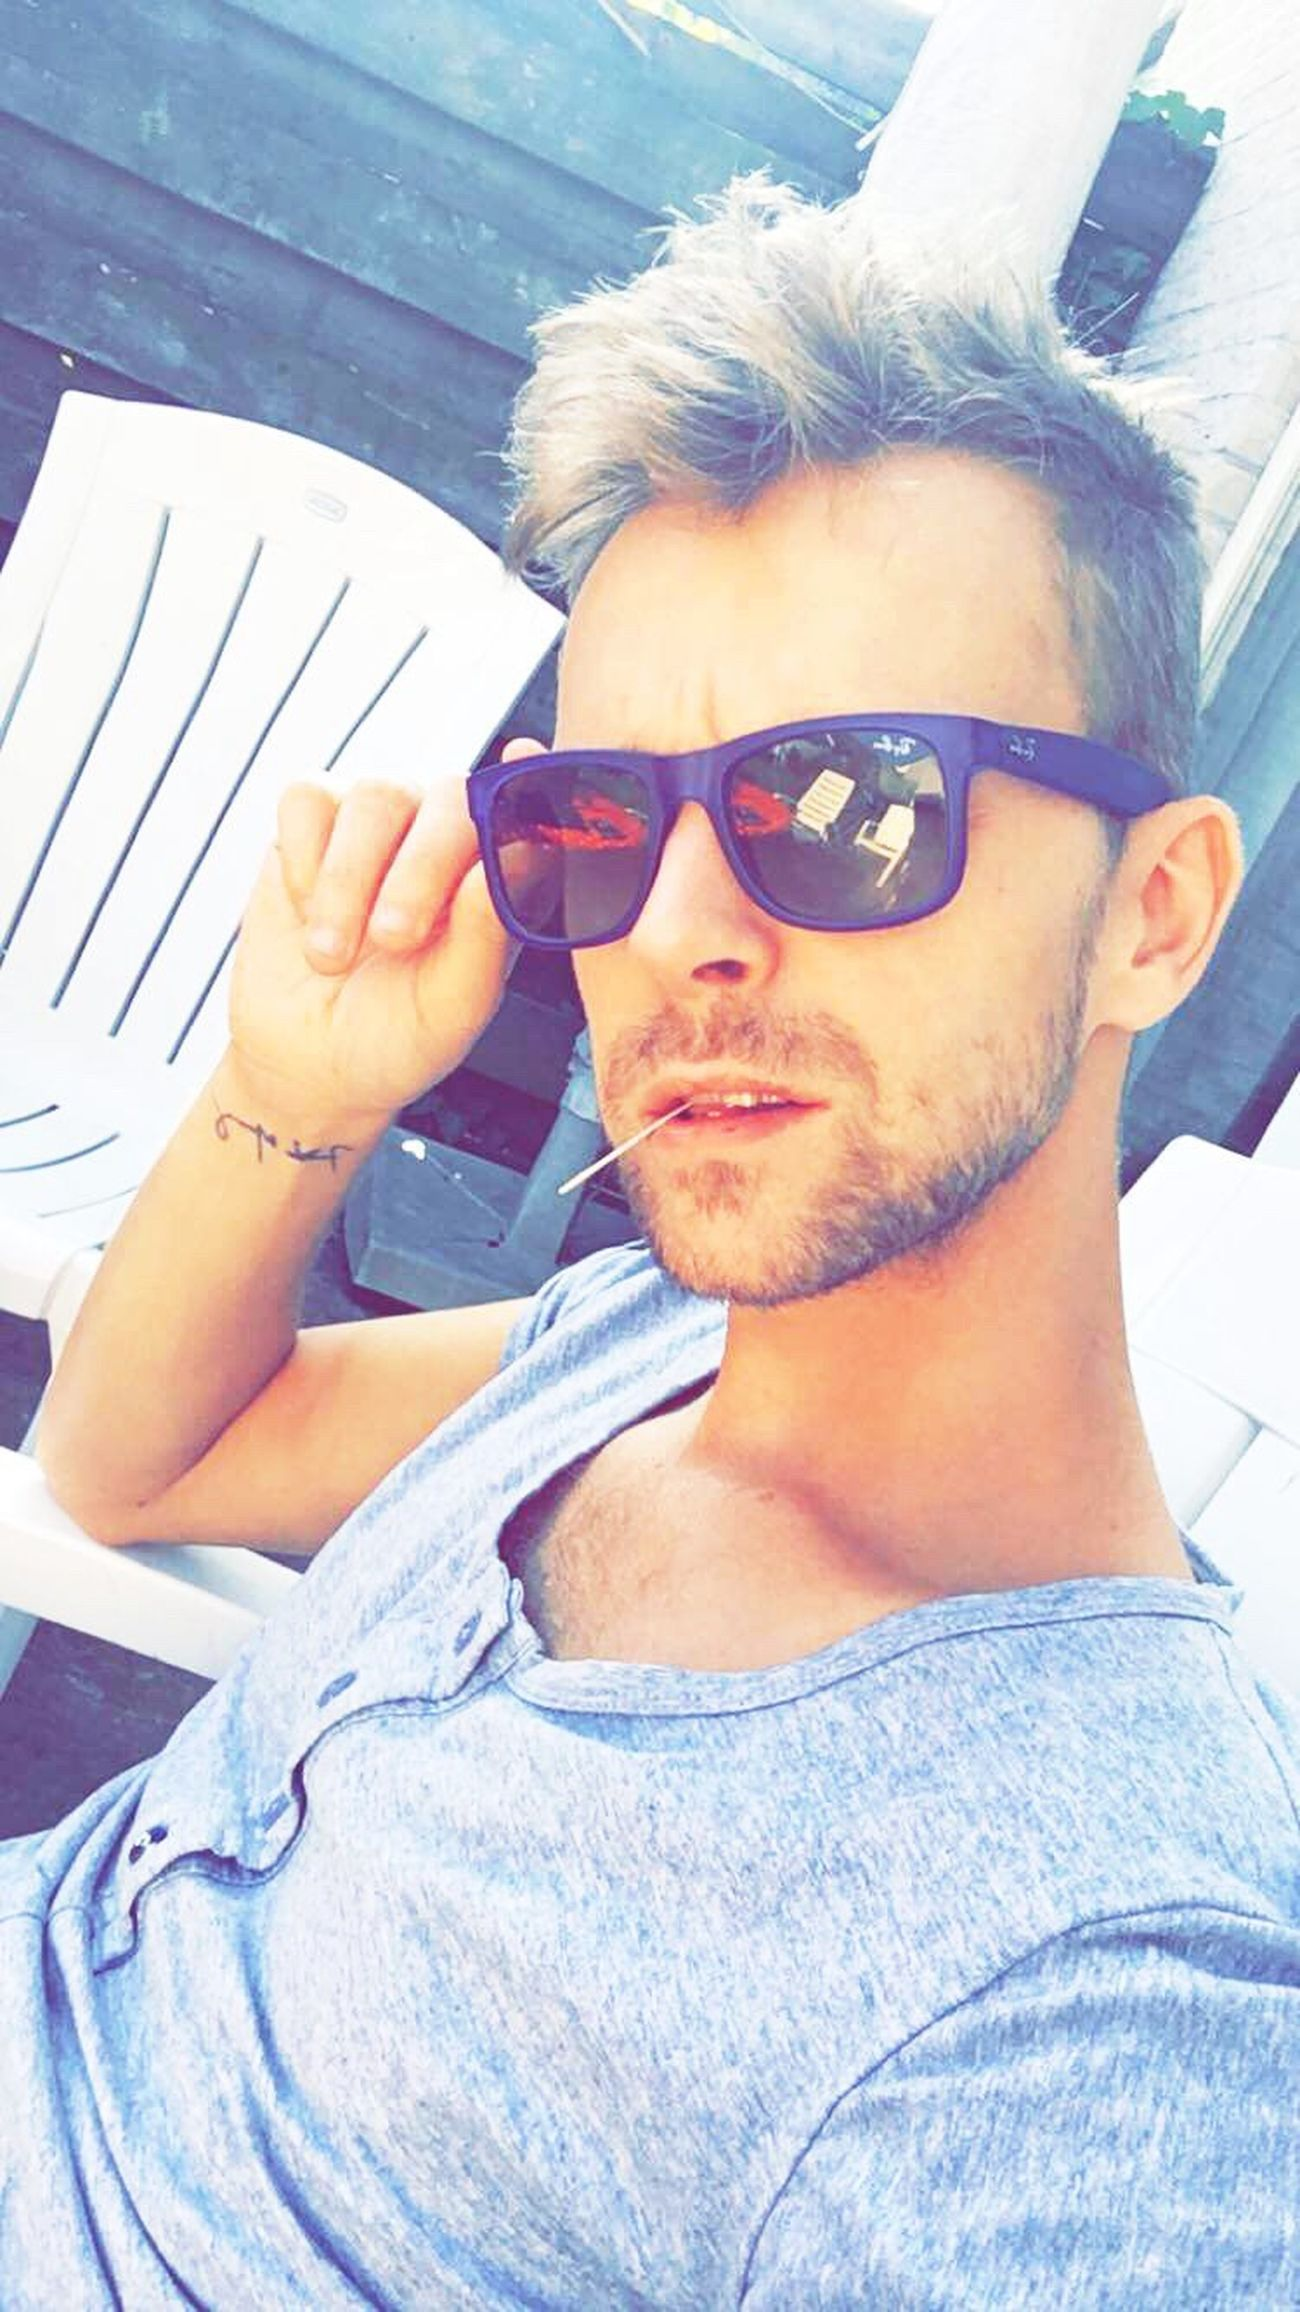 My Year My View Guy Me Man Summer Home Relax Relaxing Sunglasses Chilling Handsome Beauty Beautiful Faces Of EyeEm Faces Of Summer Cool Style Lifestyles Young Adult Boy Rayban Happy Holiday Italy Feeling Good